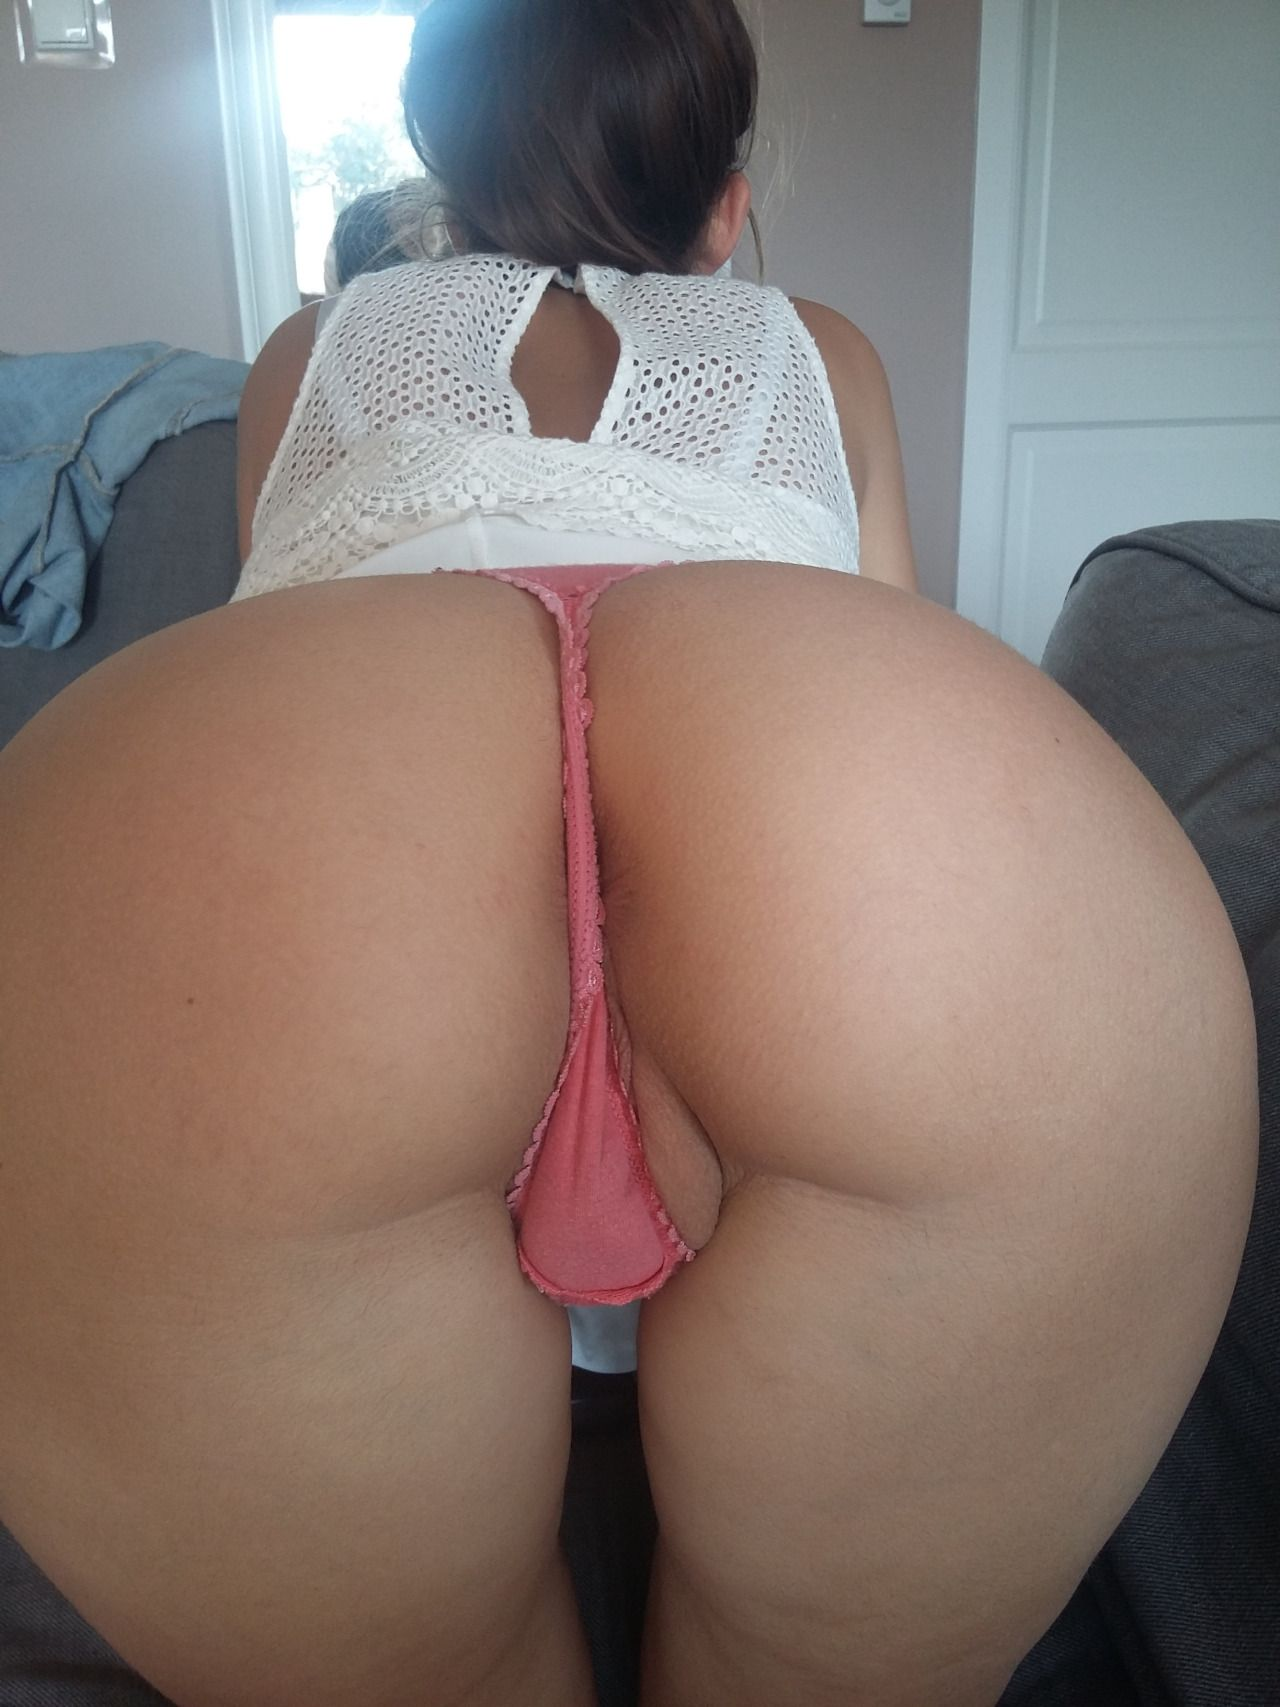 Big hubby interracial milf wife